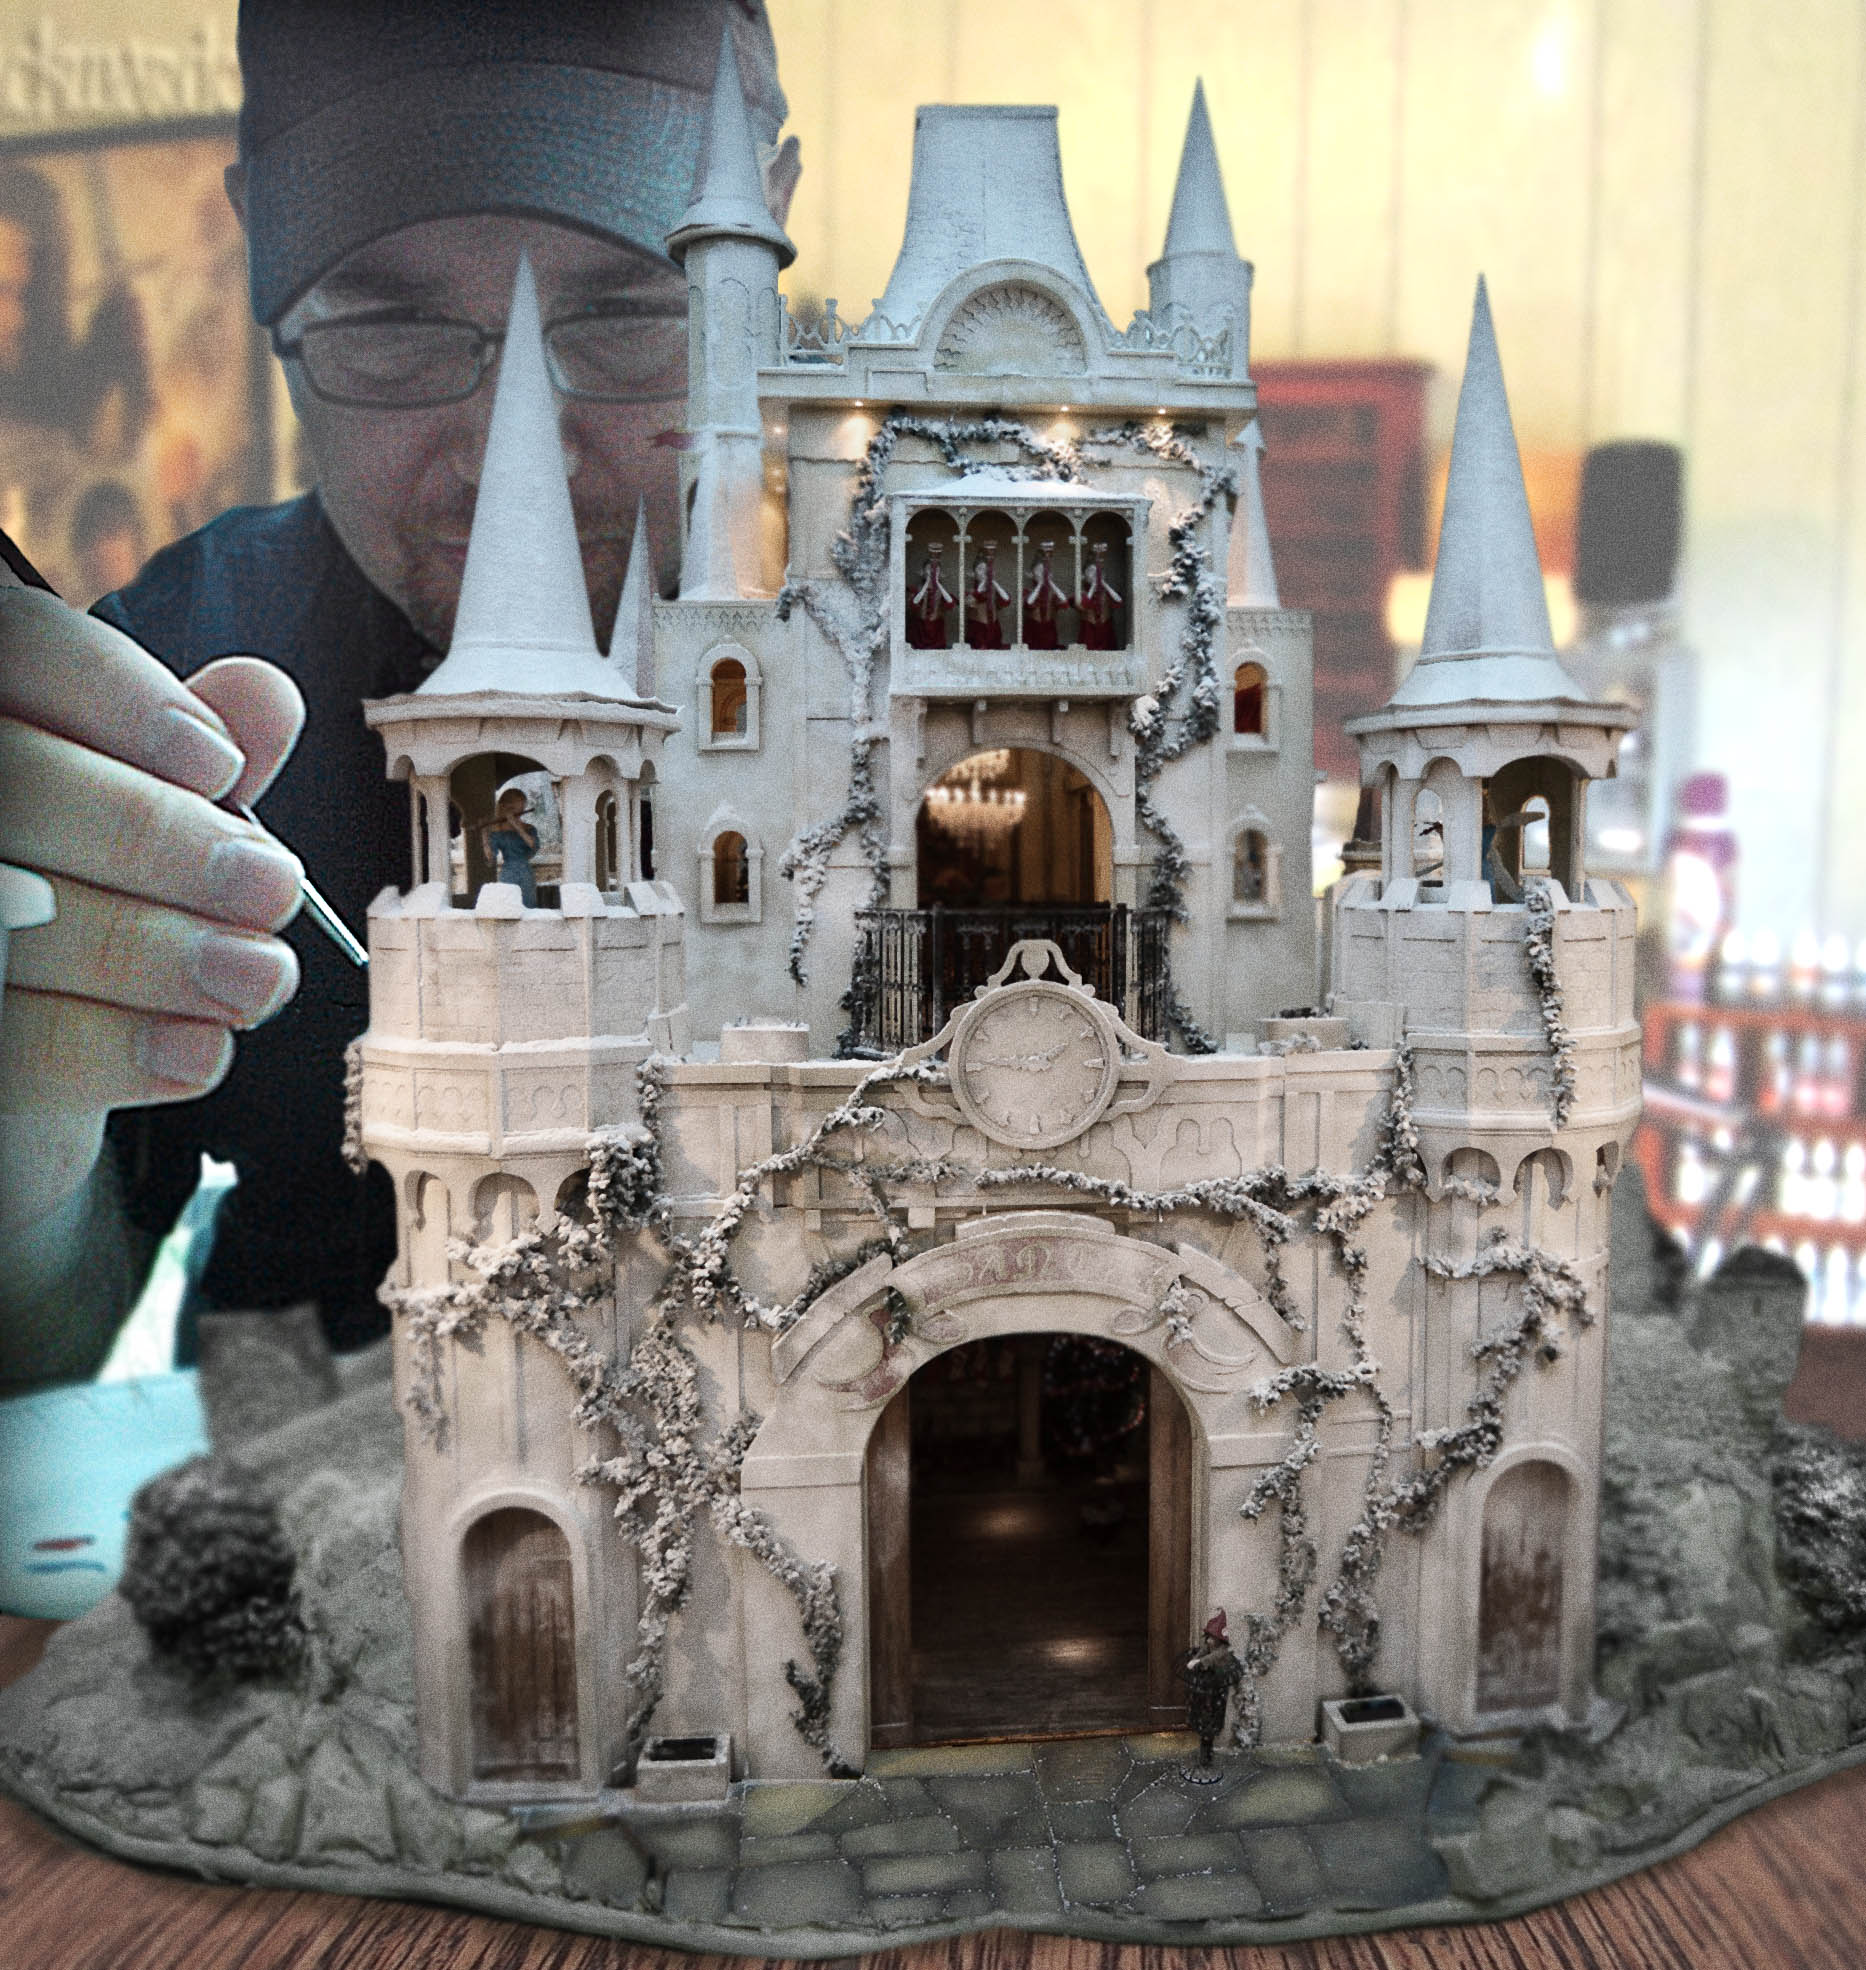 exceptional castle design #3: Photoshop Design by mhull for Winter Castle - Design #8836518